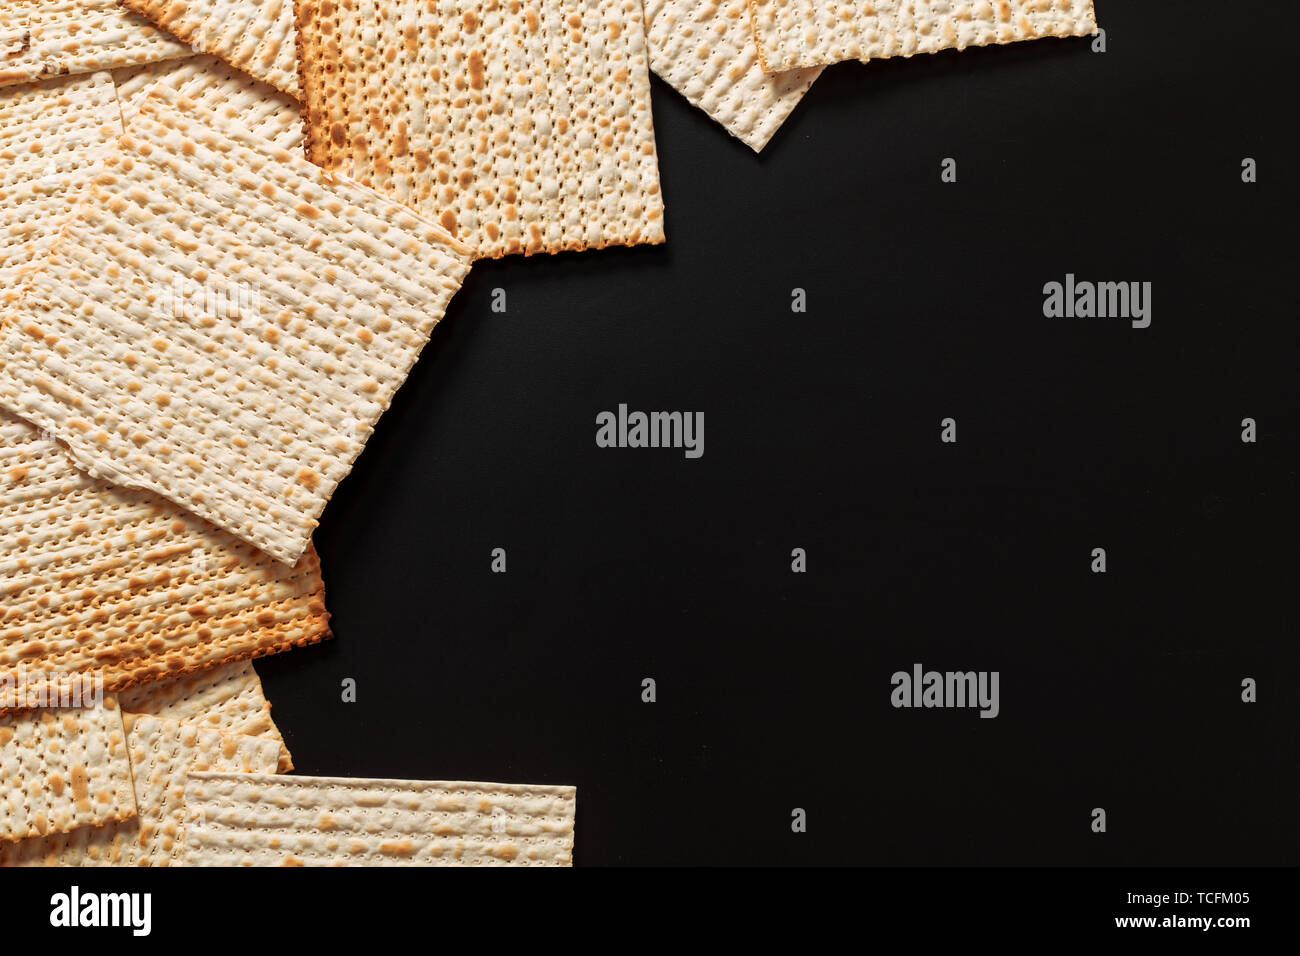 A photo of matzah or matza pieces  on black background. Matzah for the Jewish Passover holidays. Place for text, copy space - Stock Image